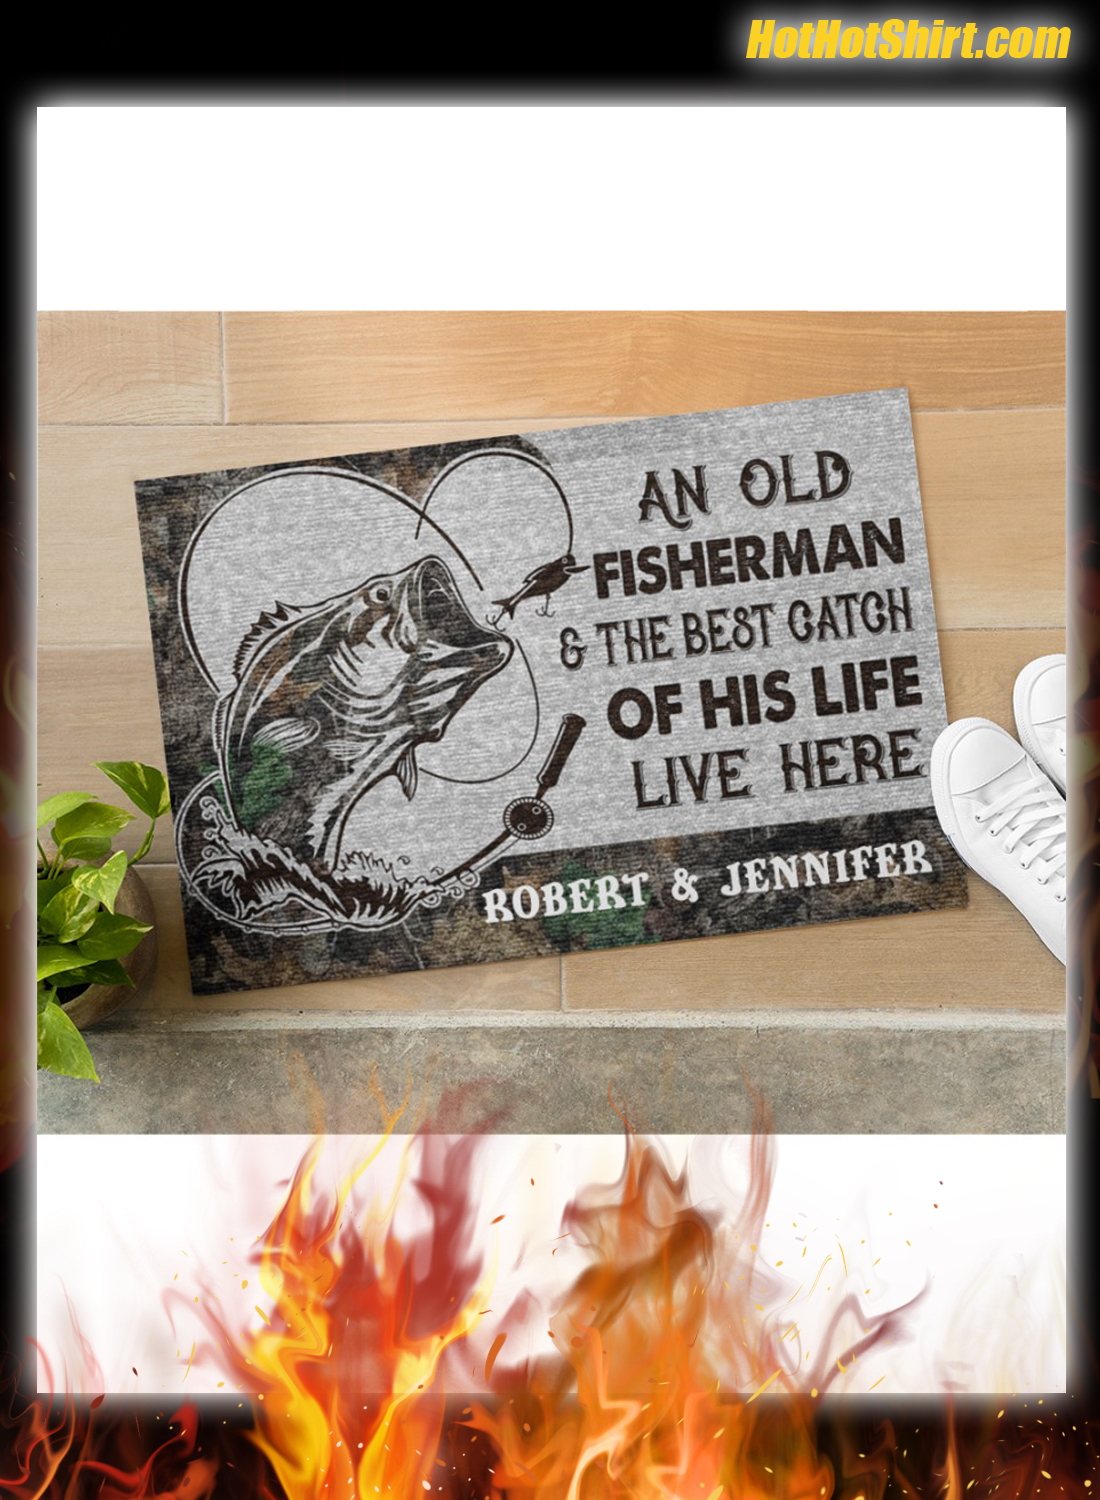 Personalized Name An Old Fisherman And The Best Catch Of His Life Here Doormat 1